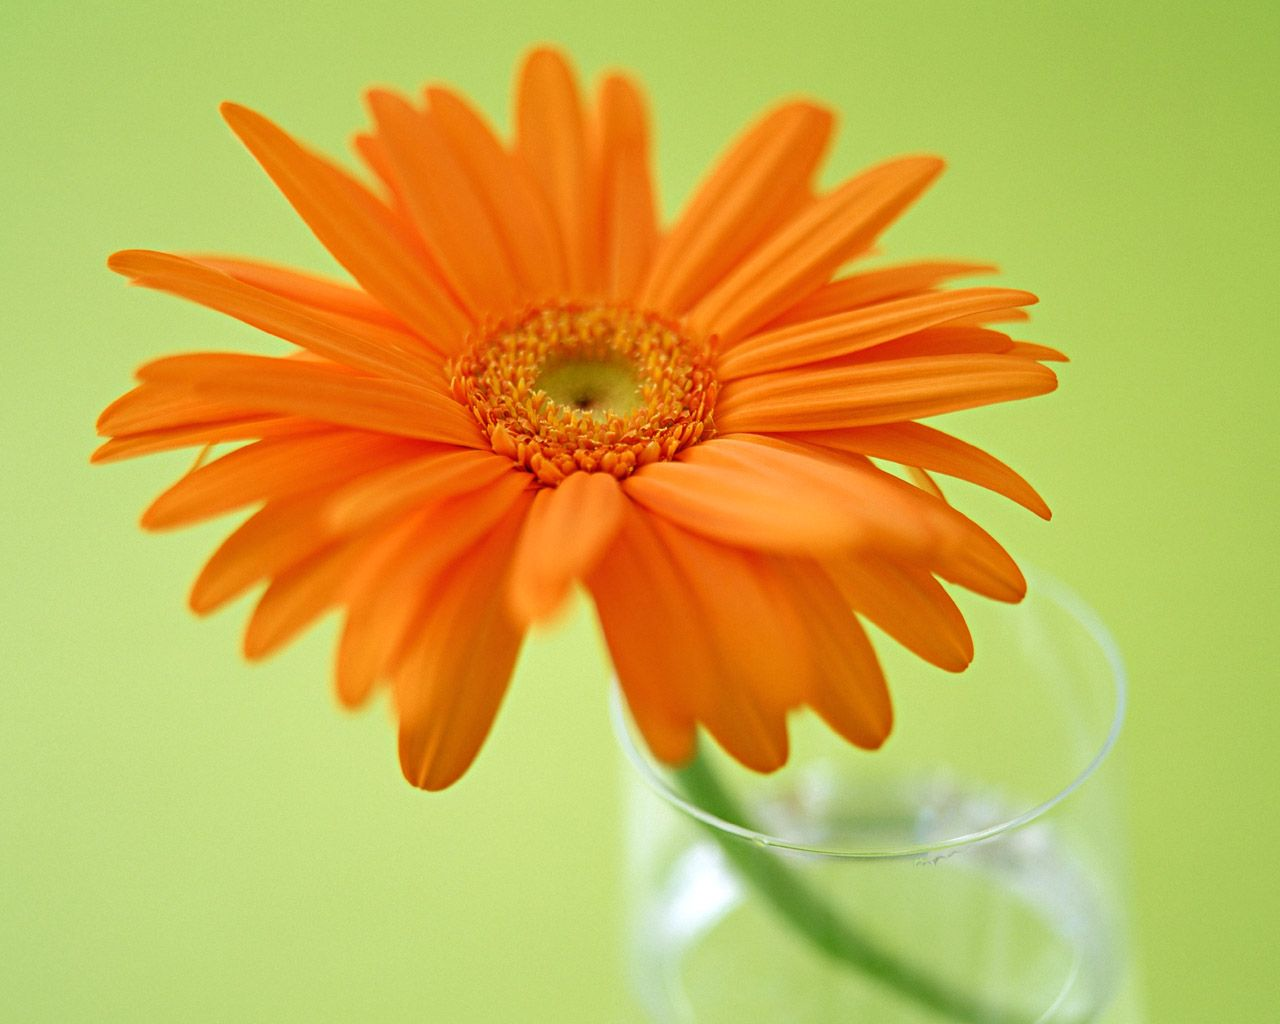 Gerbera Daisies symbolize cheer, but more traditionally